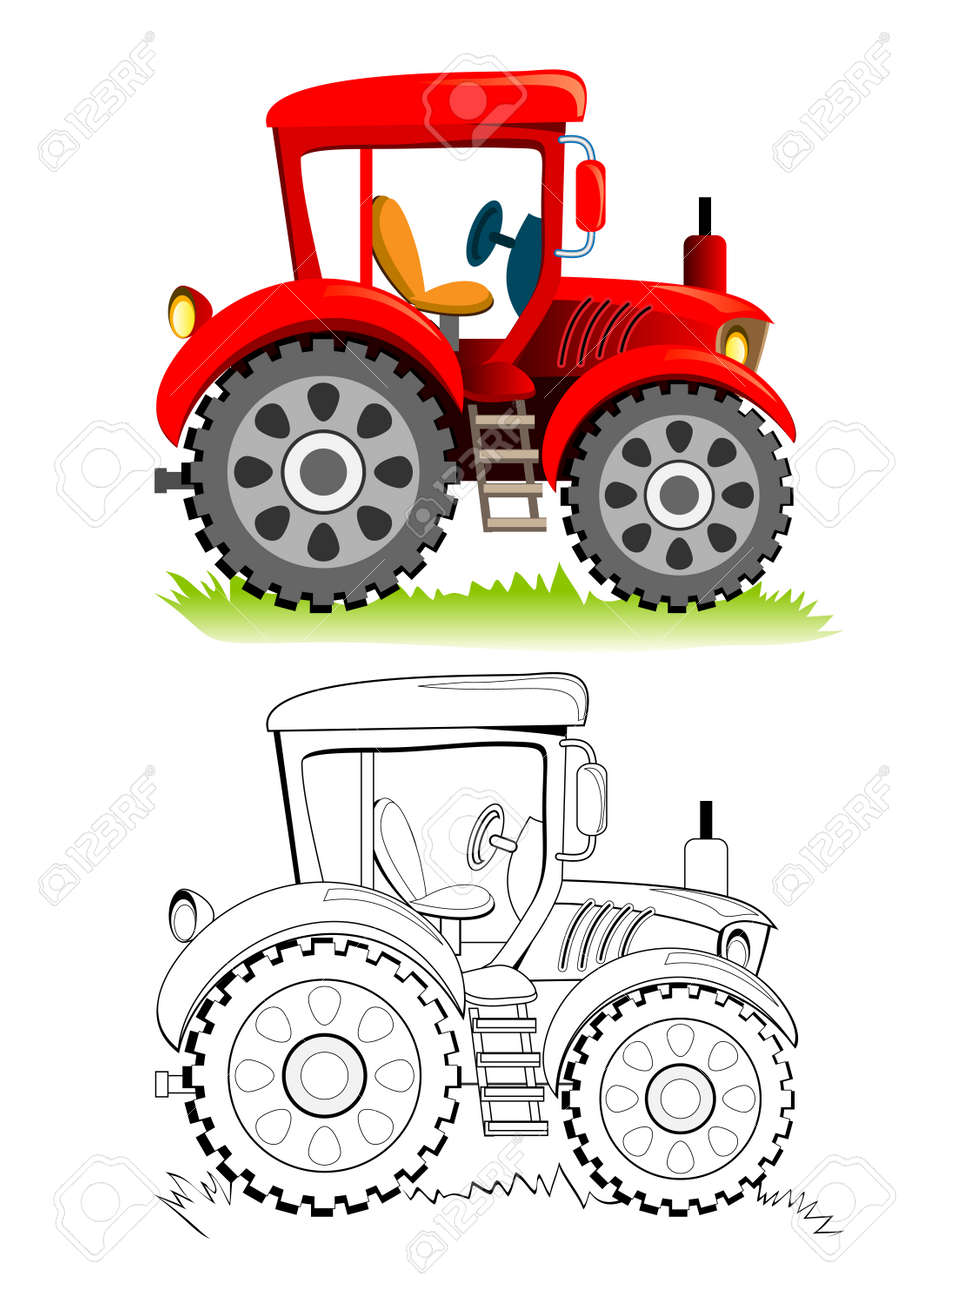 Colorful and black and white template for coloring. Cute toy tractor model. Illustration for boys. Worksheet for kids. Coloring book for children and adults. Flat cartoon vector. - 170074308